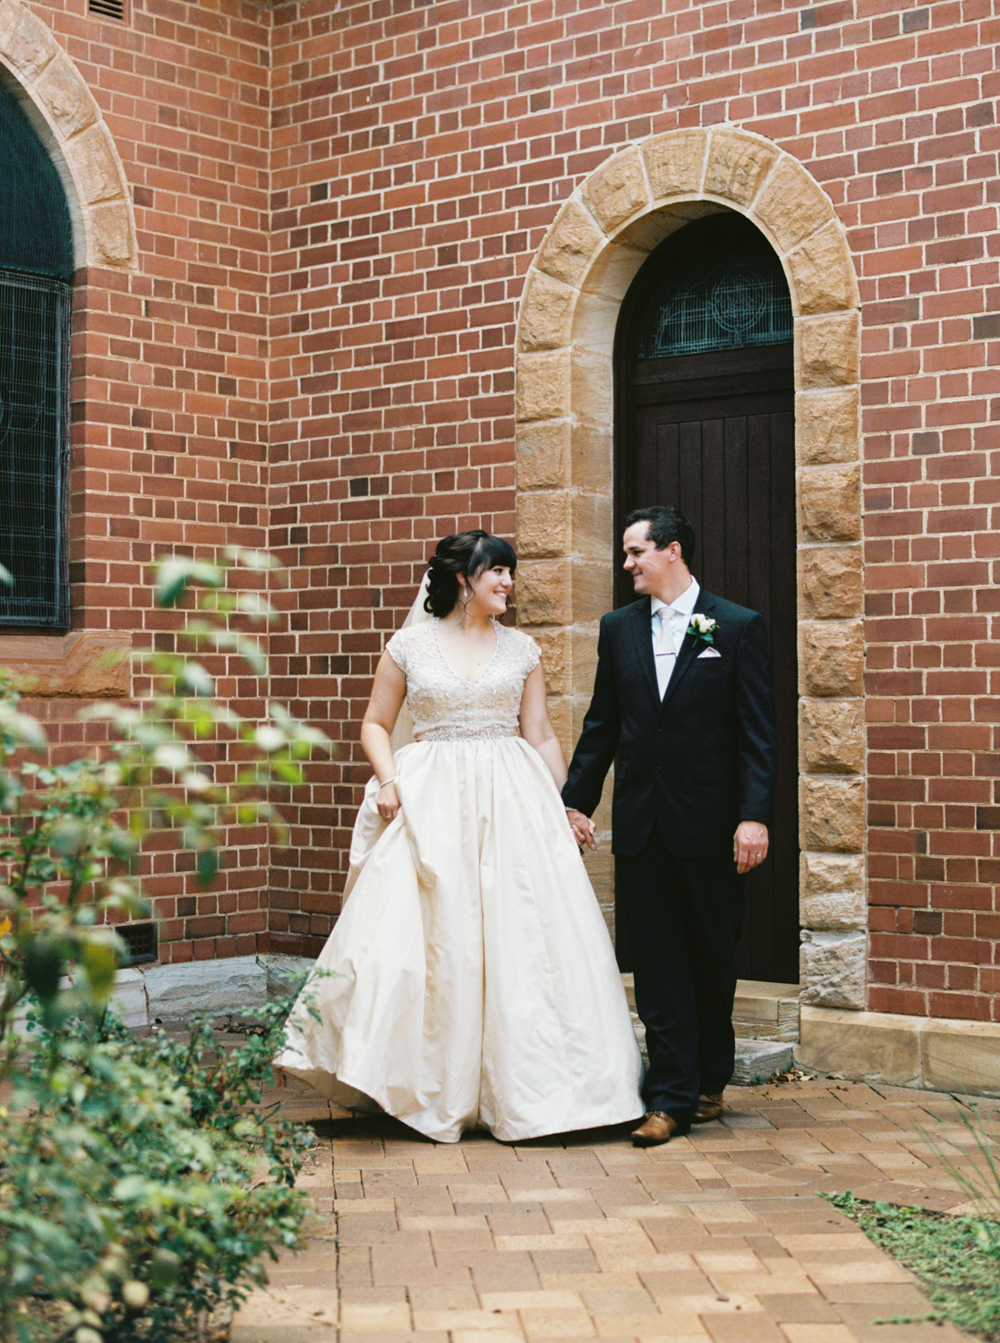 00046- Dubbo NSW Wedding Photographer Sheri McMahon.jpg